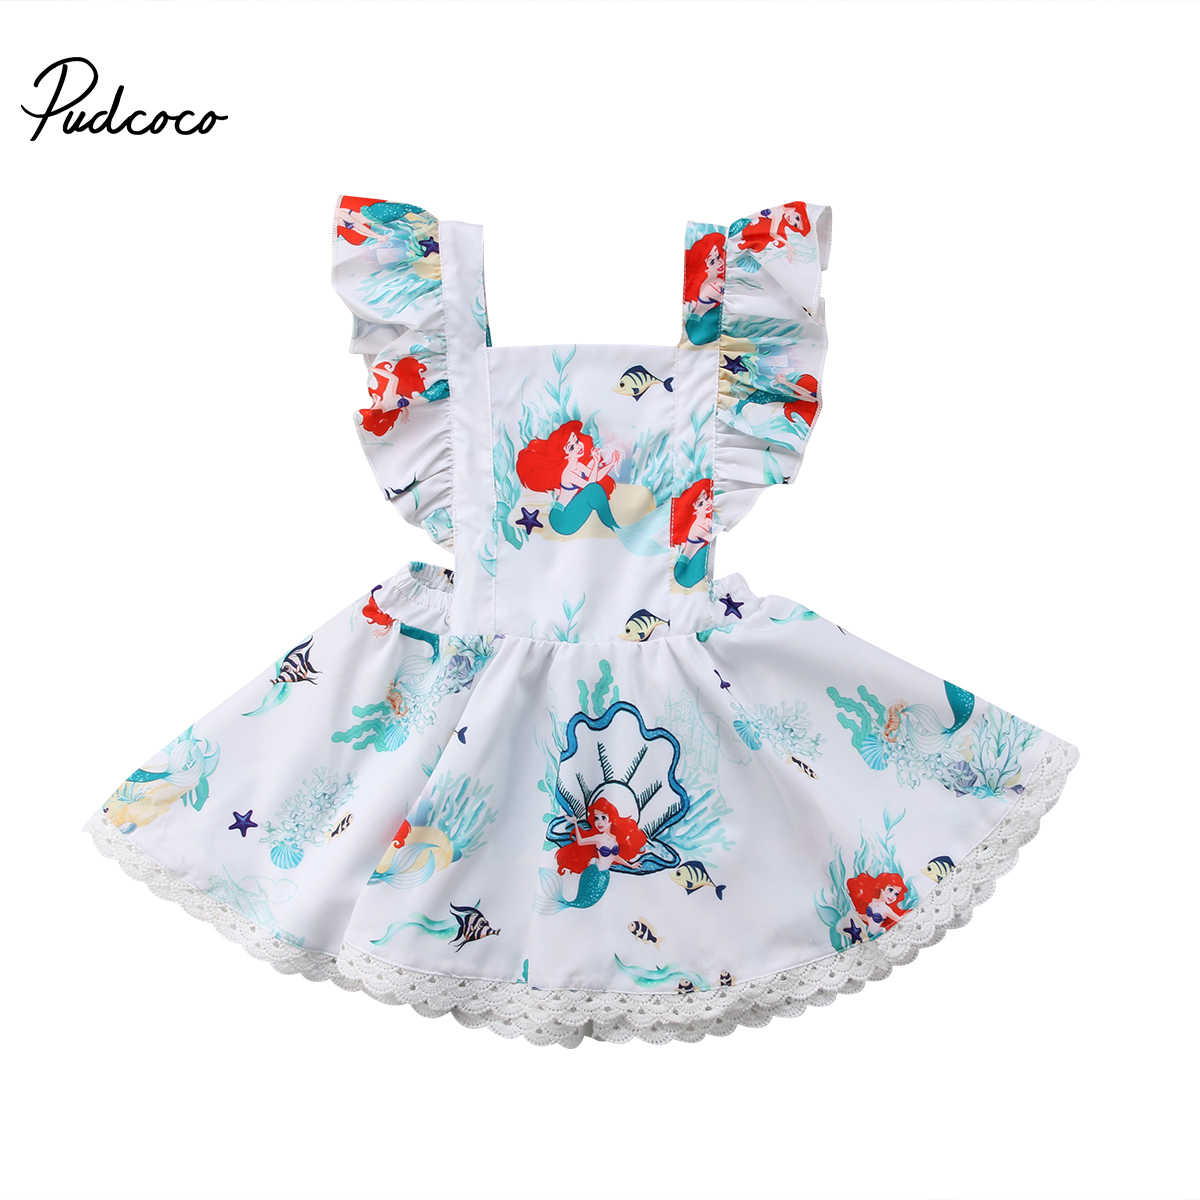 8eb40a2dbfbe Pudcoco Summer Toddler Baby Kids Girls Dresses Mermaid Backless Cartoon  Princess Party Dress Sundress Cotton Elegant